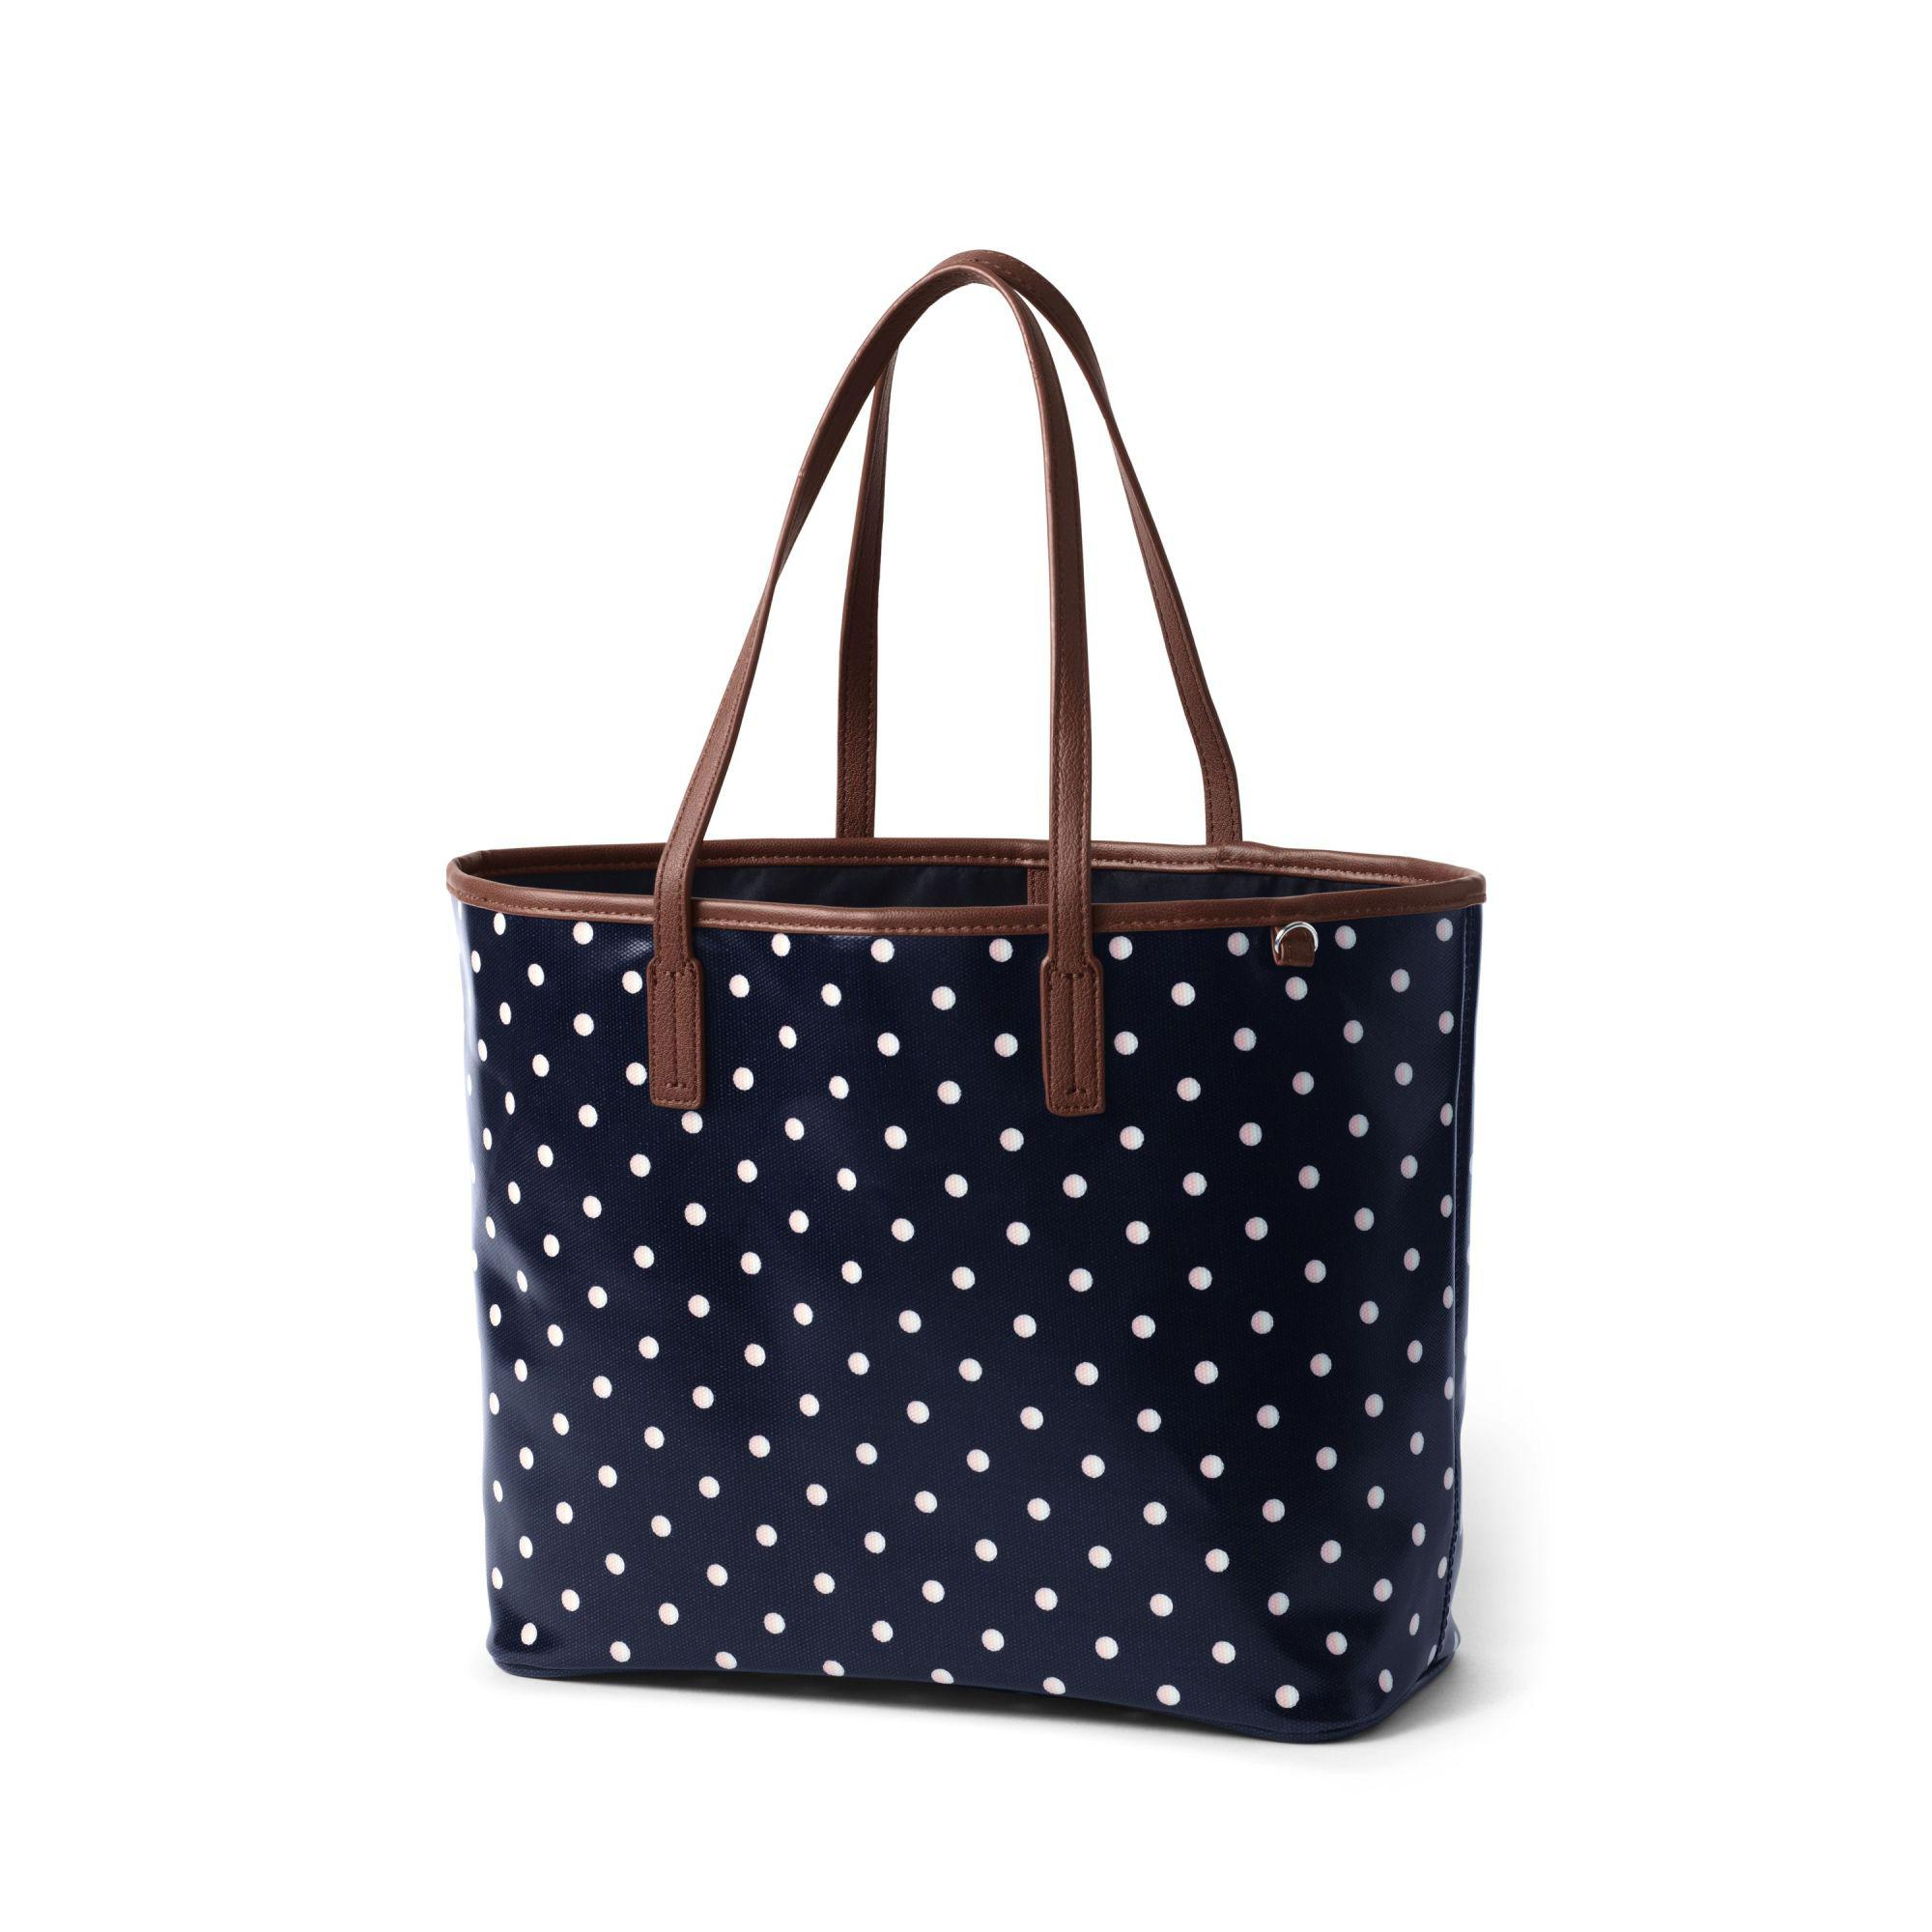 b74dfa3b4 Lands' End Multi Coated Canvas Tote in Blue - Lyst